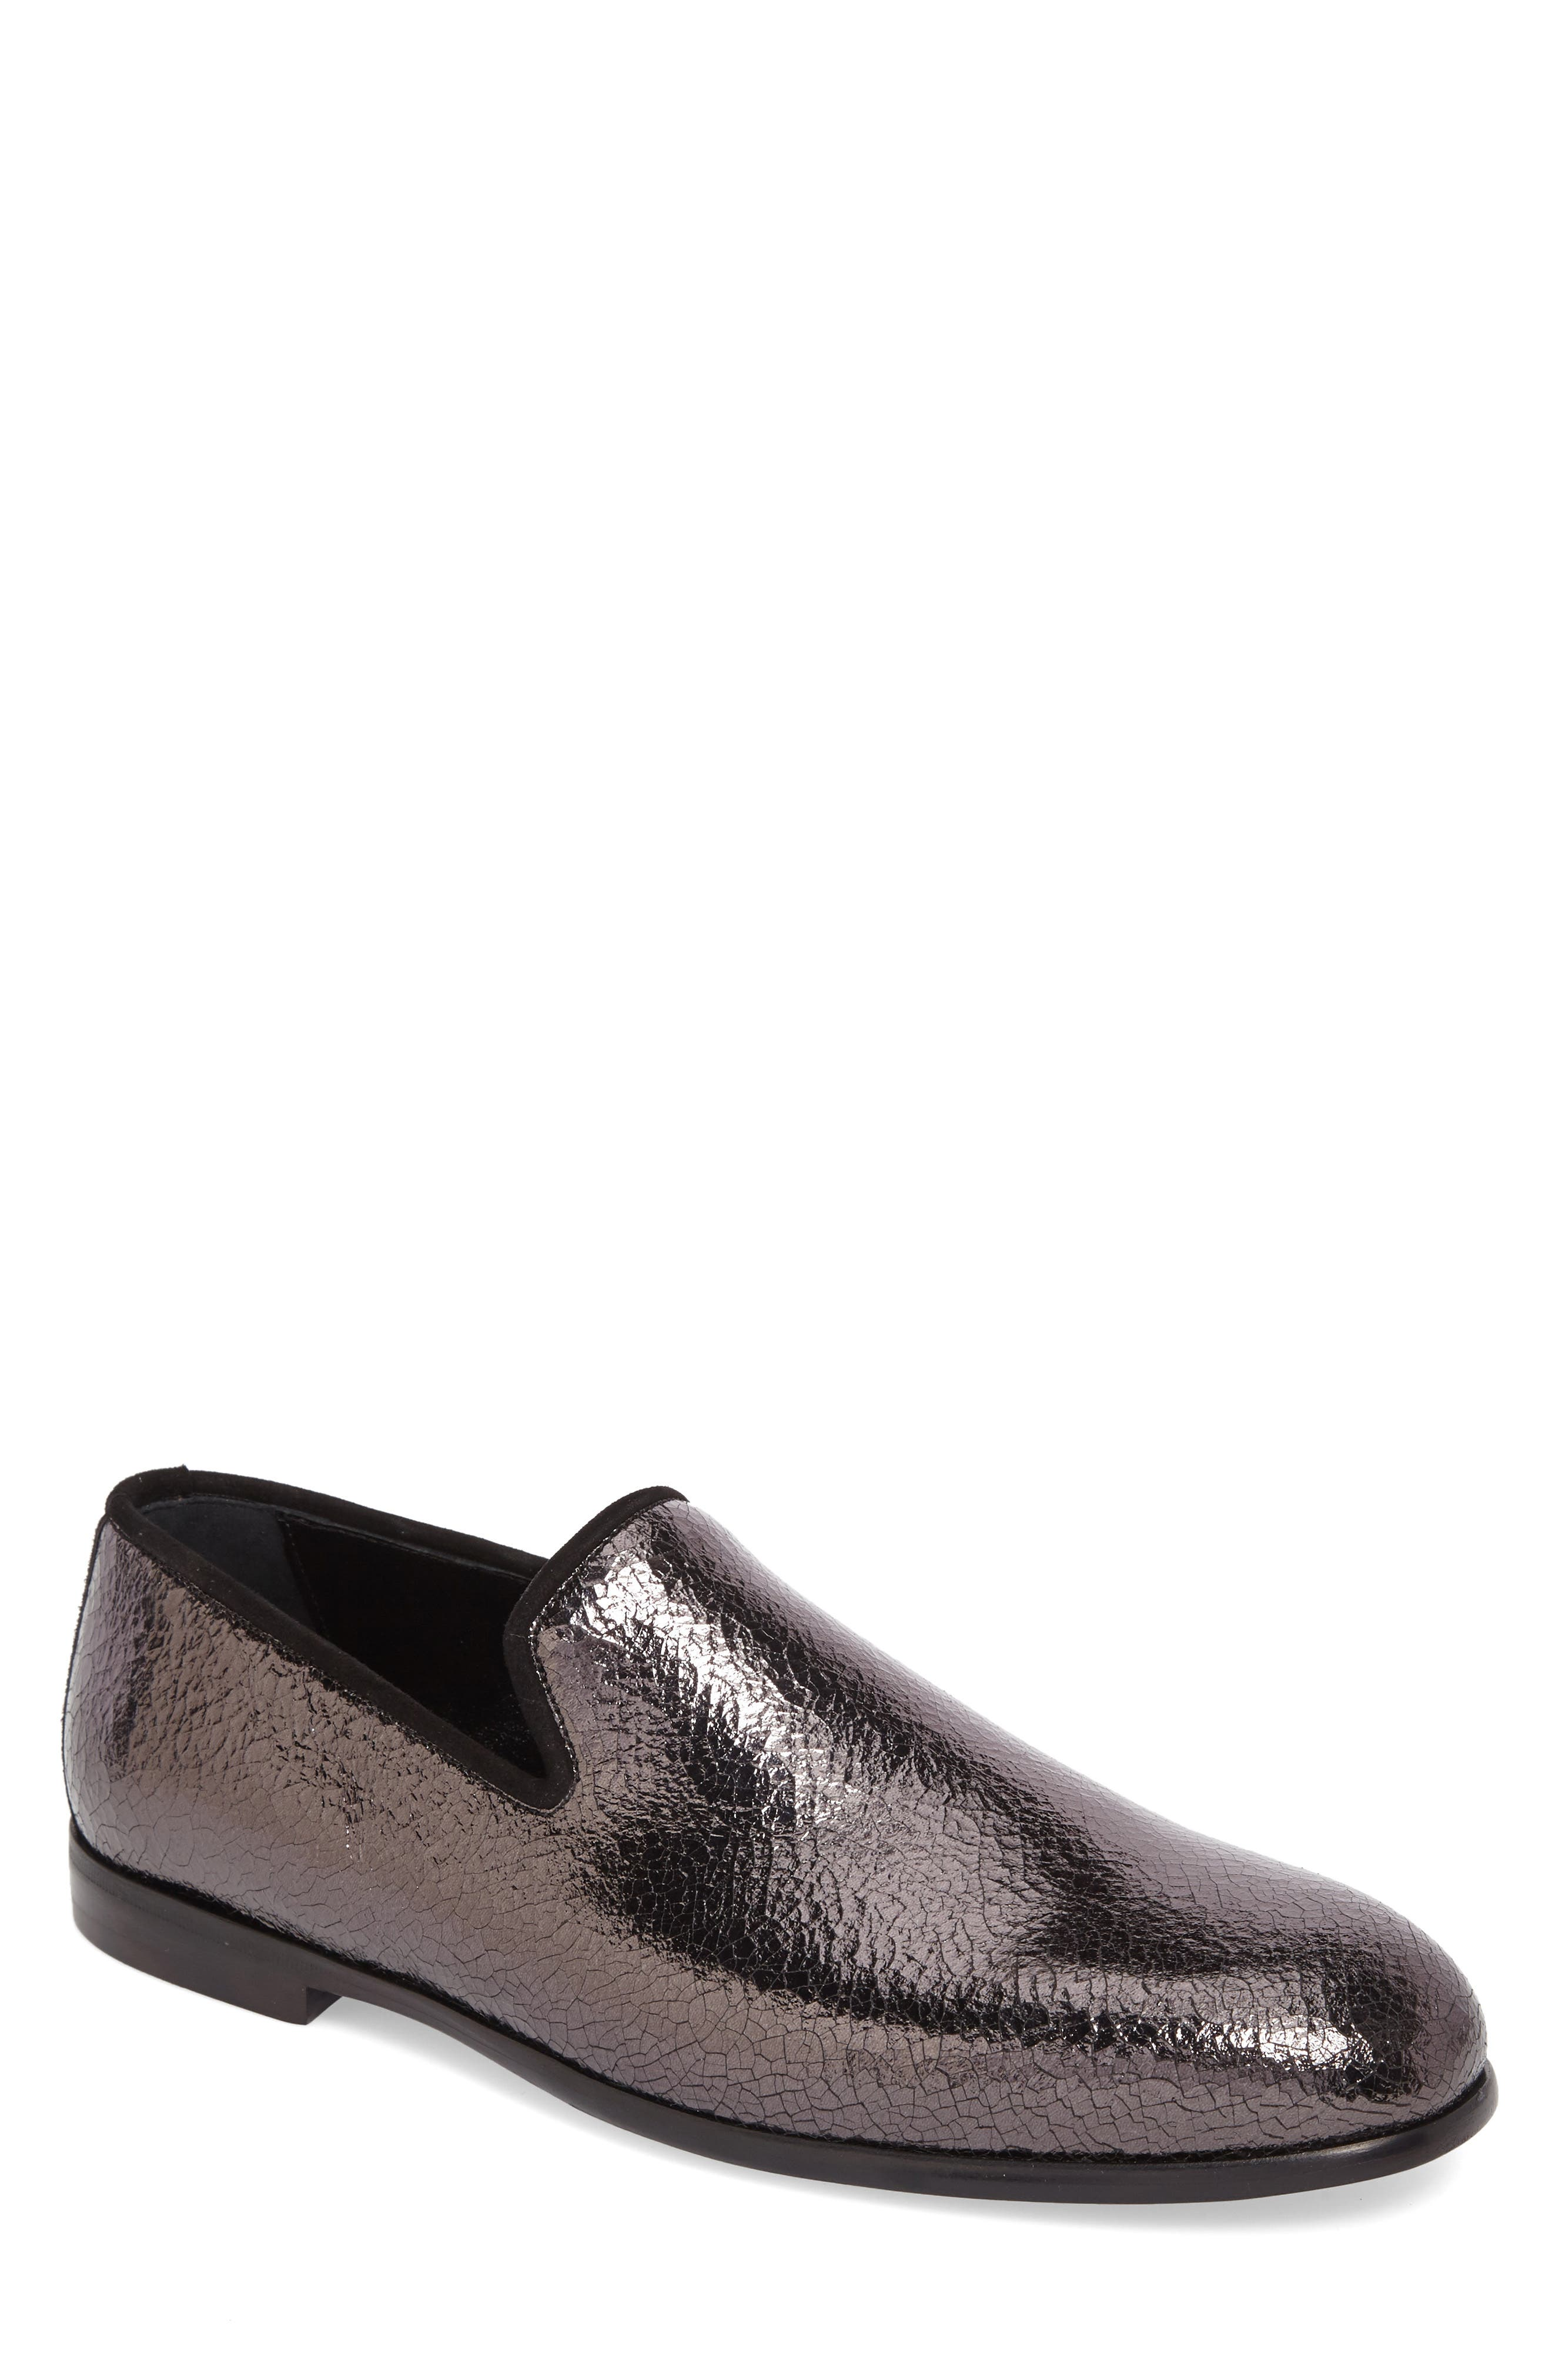 Marlo Venetian Loafer,                         Main,                         color, 030